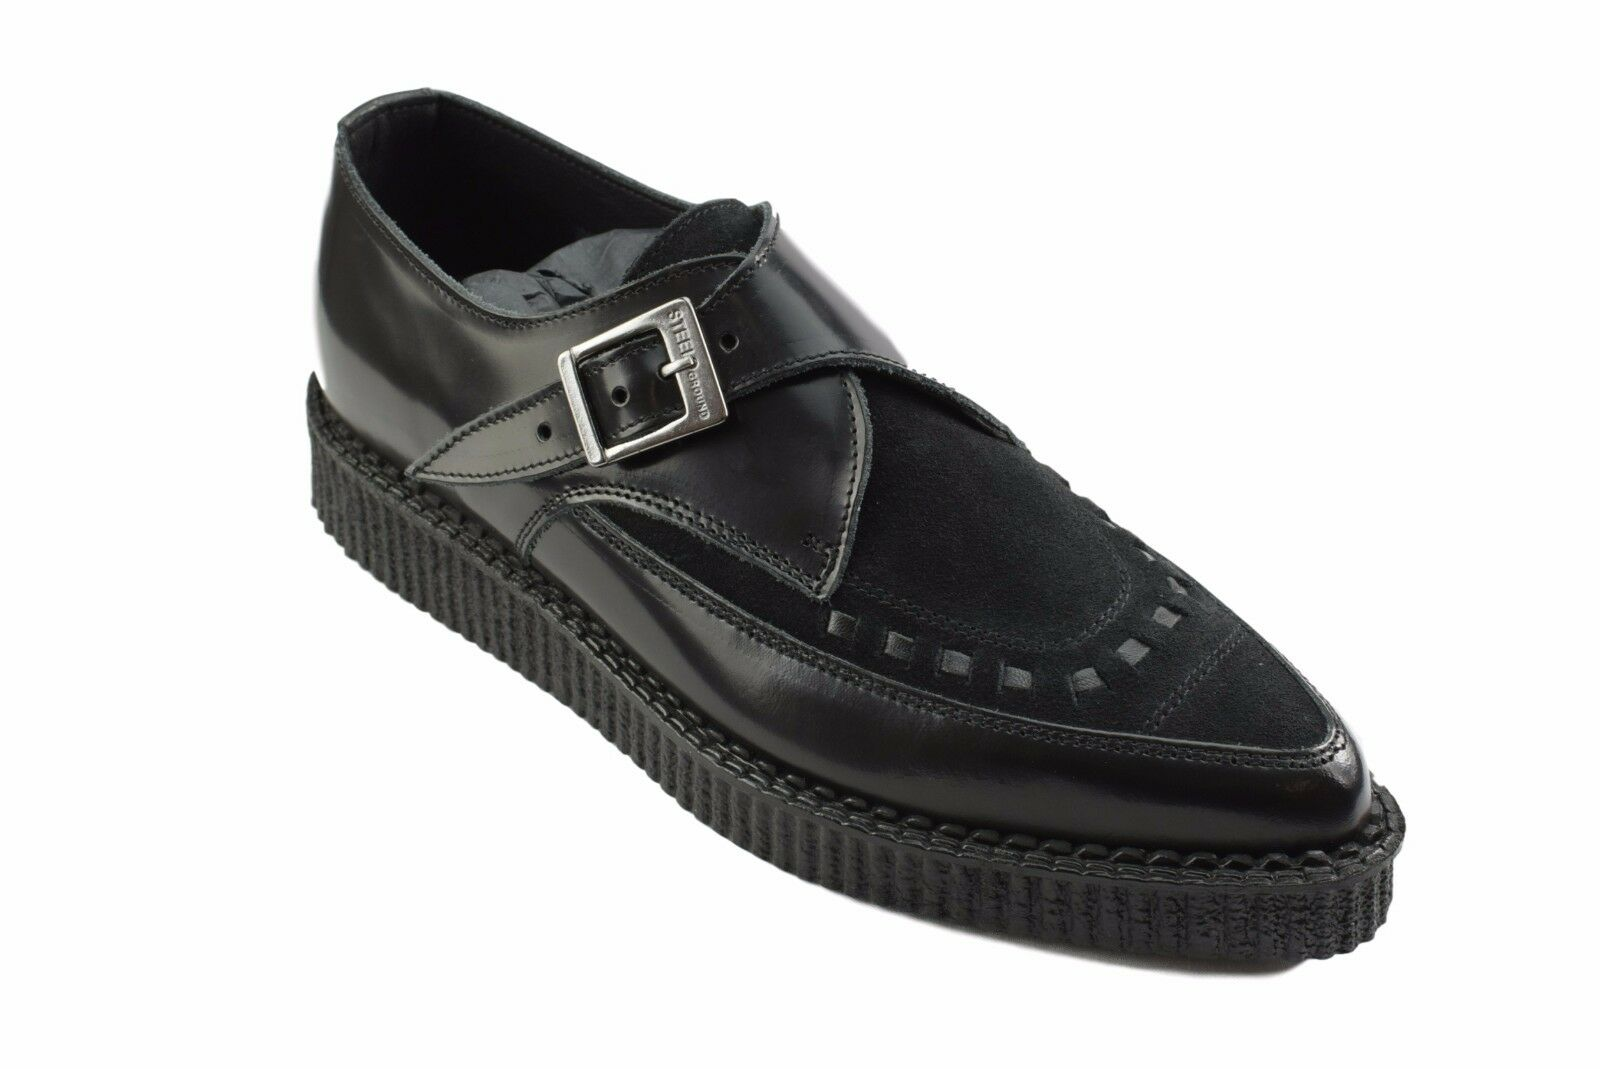 Steel Ground Schuhes schwarz Leder Suede Point Creepers Monk Buckle Pointed